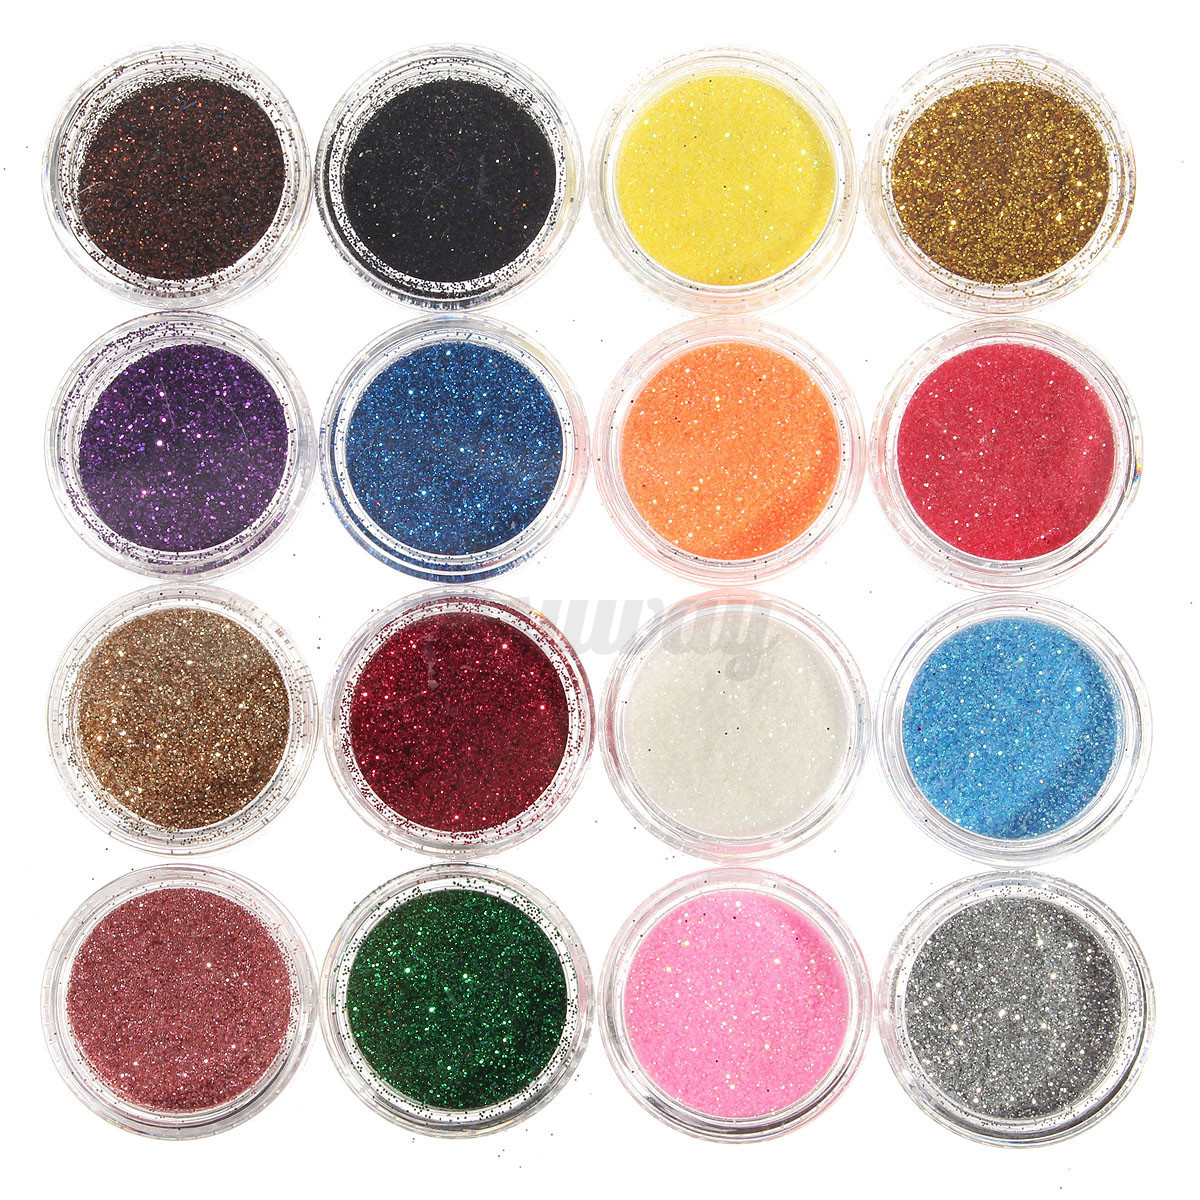 30 45 loose glitter eyeshadow eye shadow face body. Black Bedroom Furniture Sets. Home Design Ideas